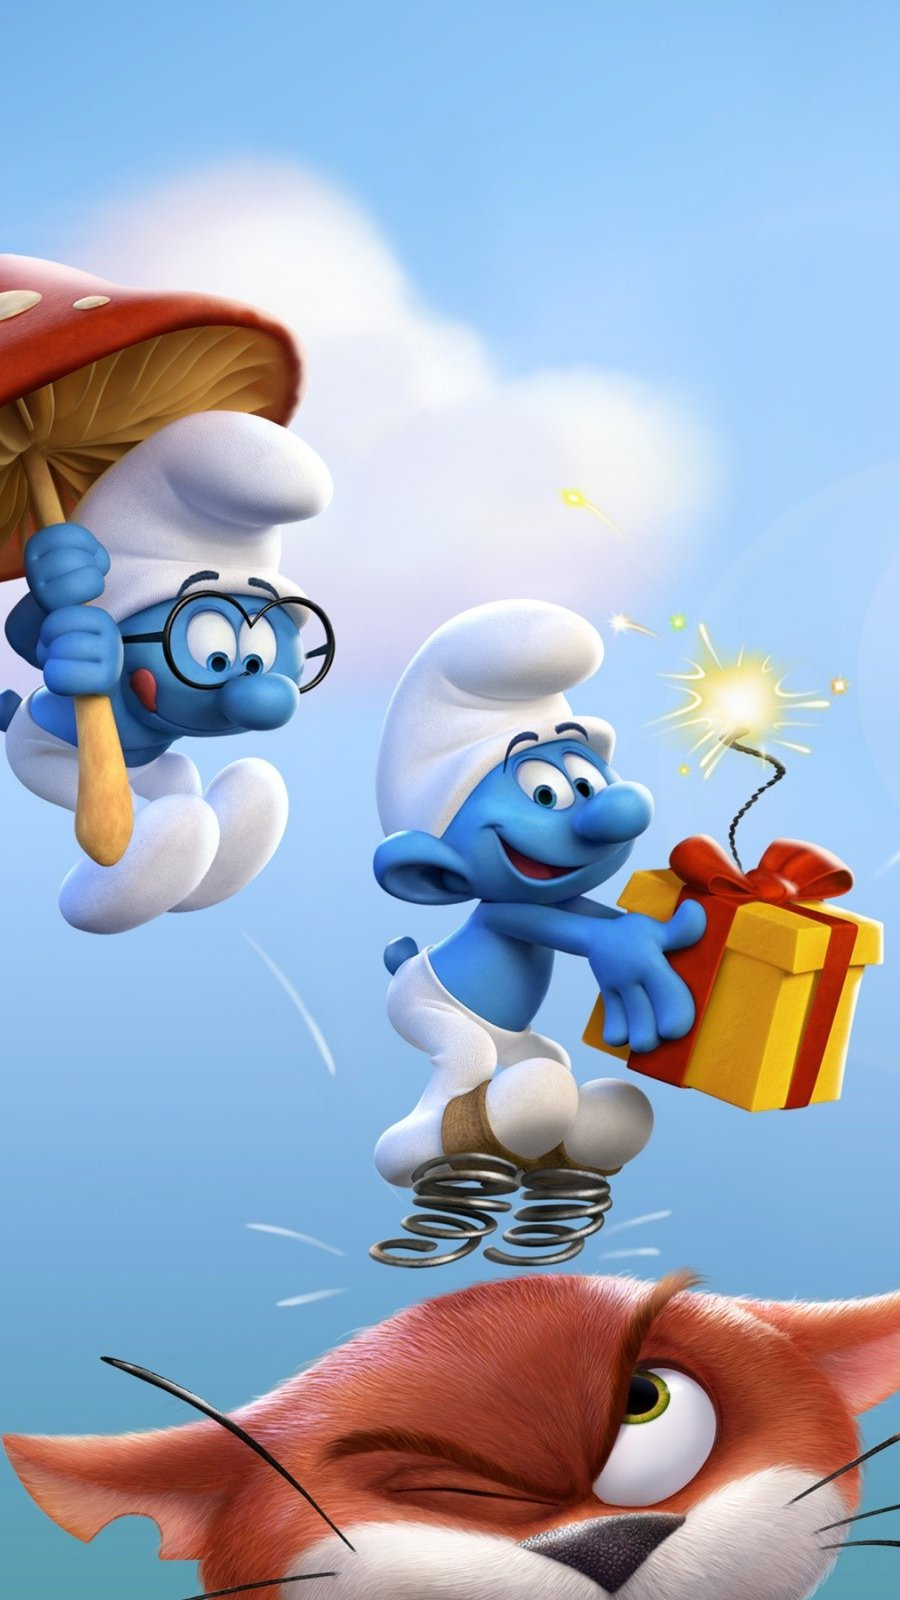 Wallpaper The Smurfs: the lost people Vertical